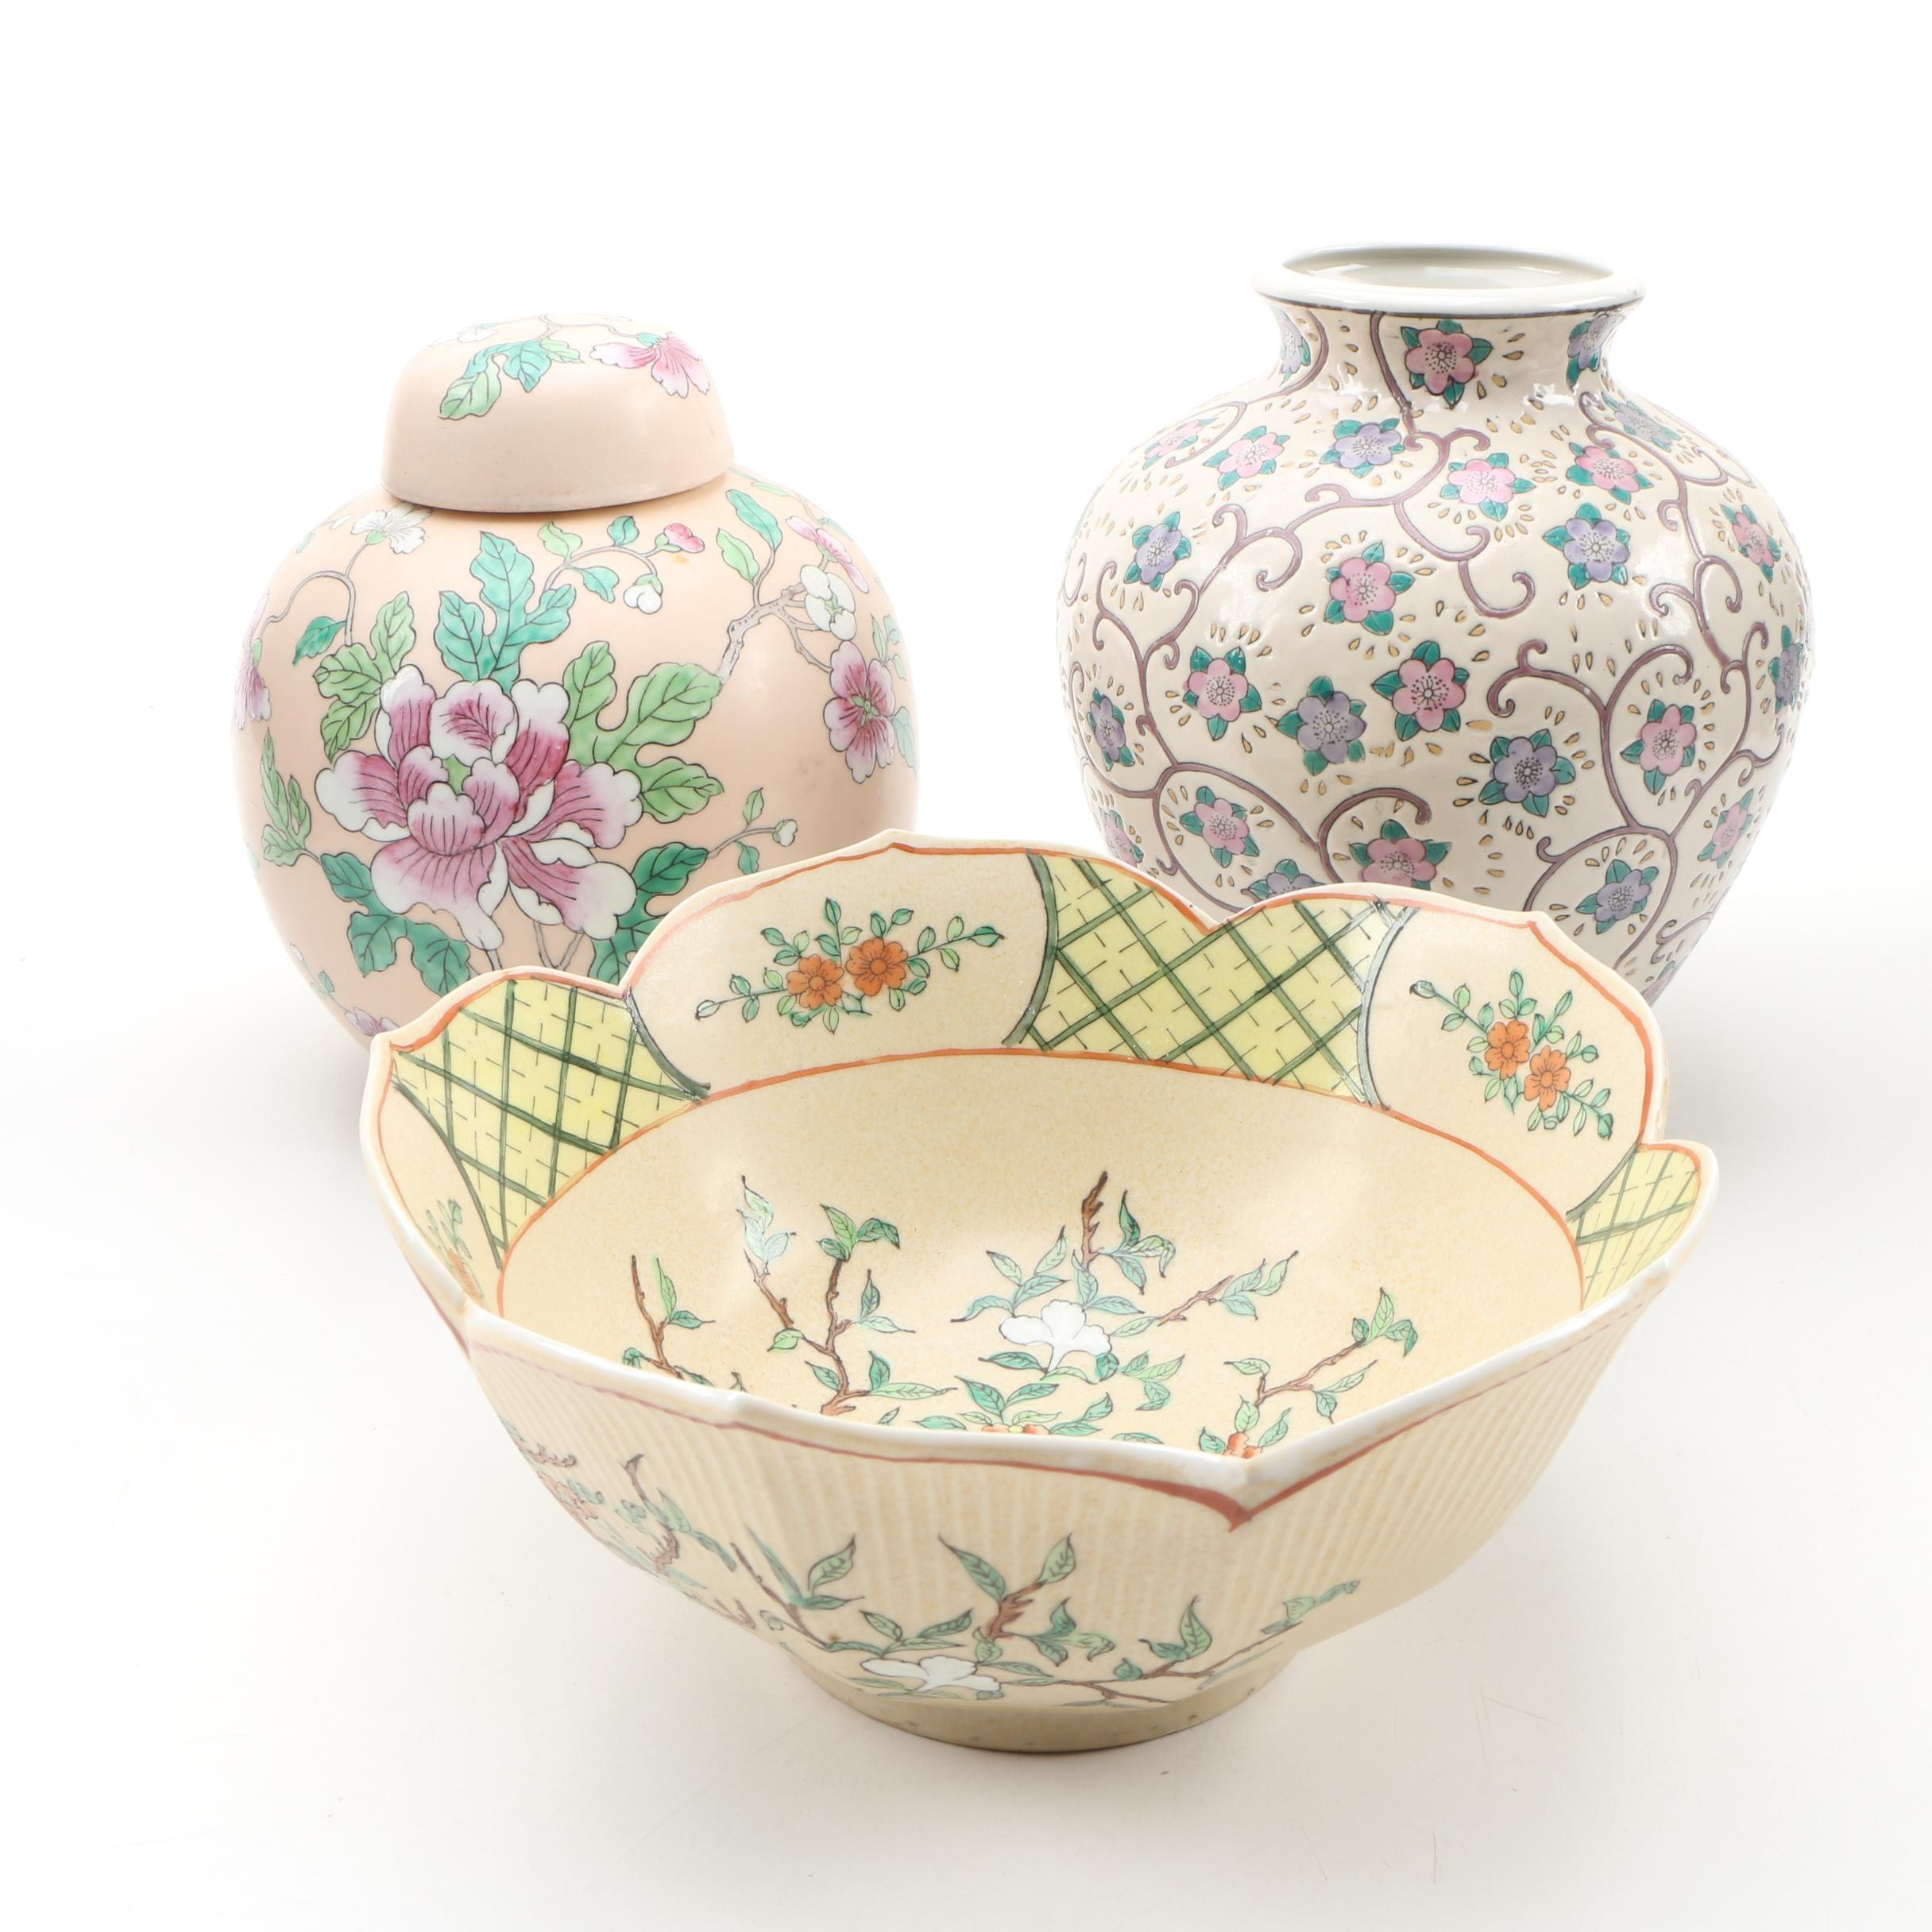 Chinese Ceramic Centerpiece Bowl, Ginger Jar, and Vase